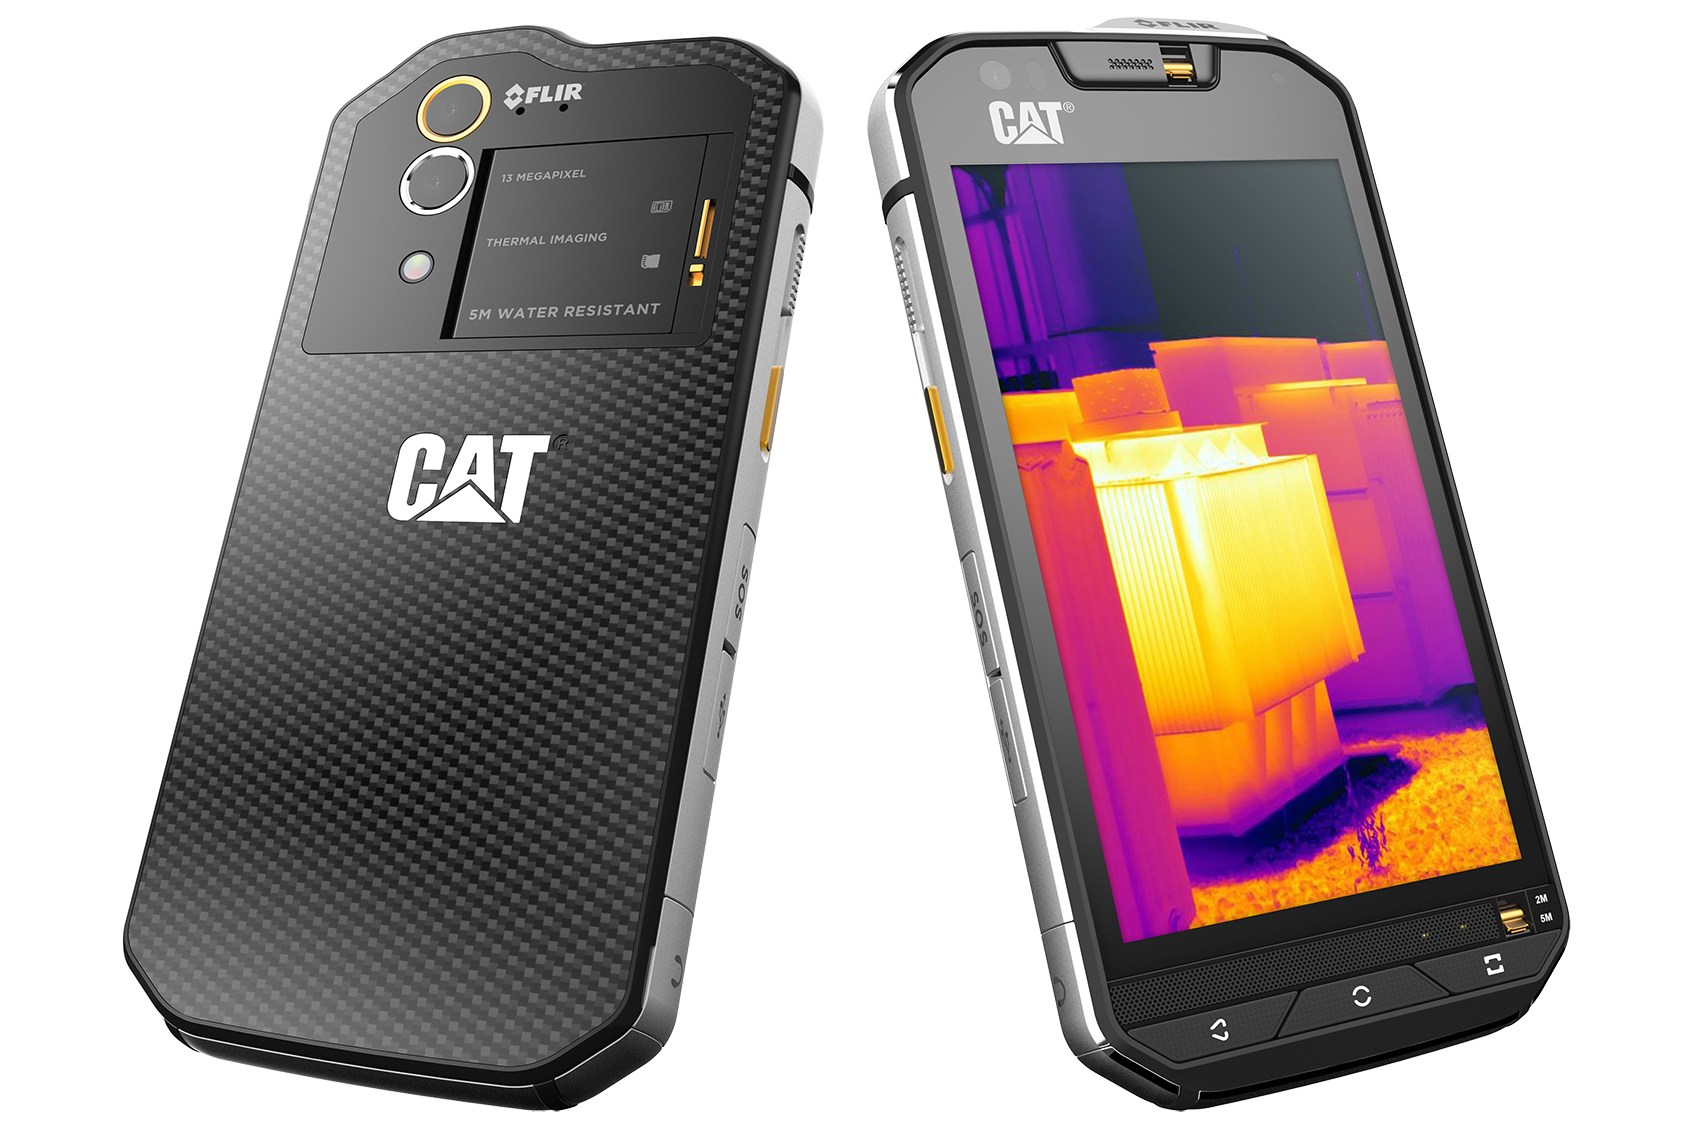 Caterpillar Debuts the World's First Thermal Camera Smartphone